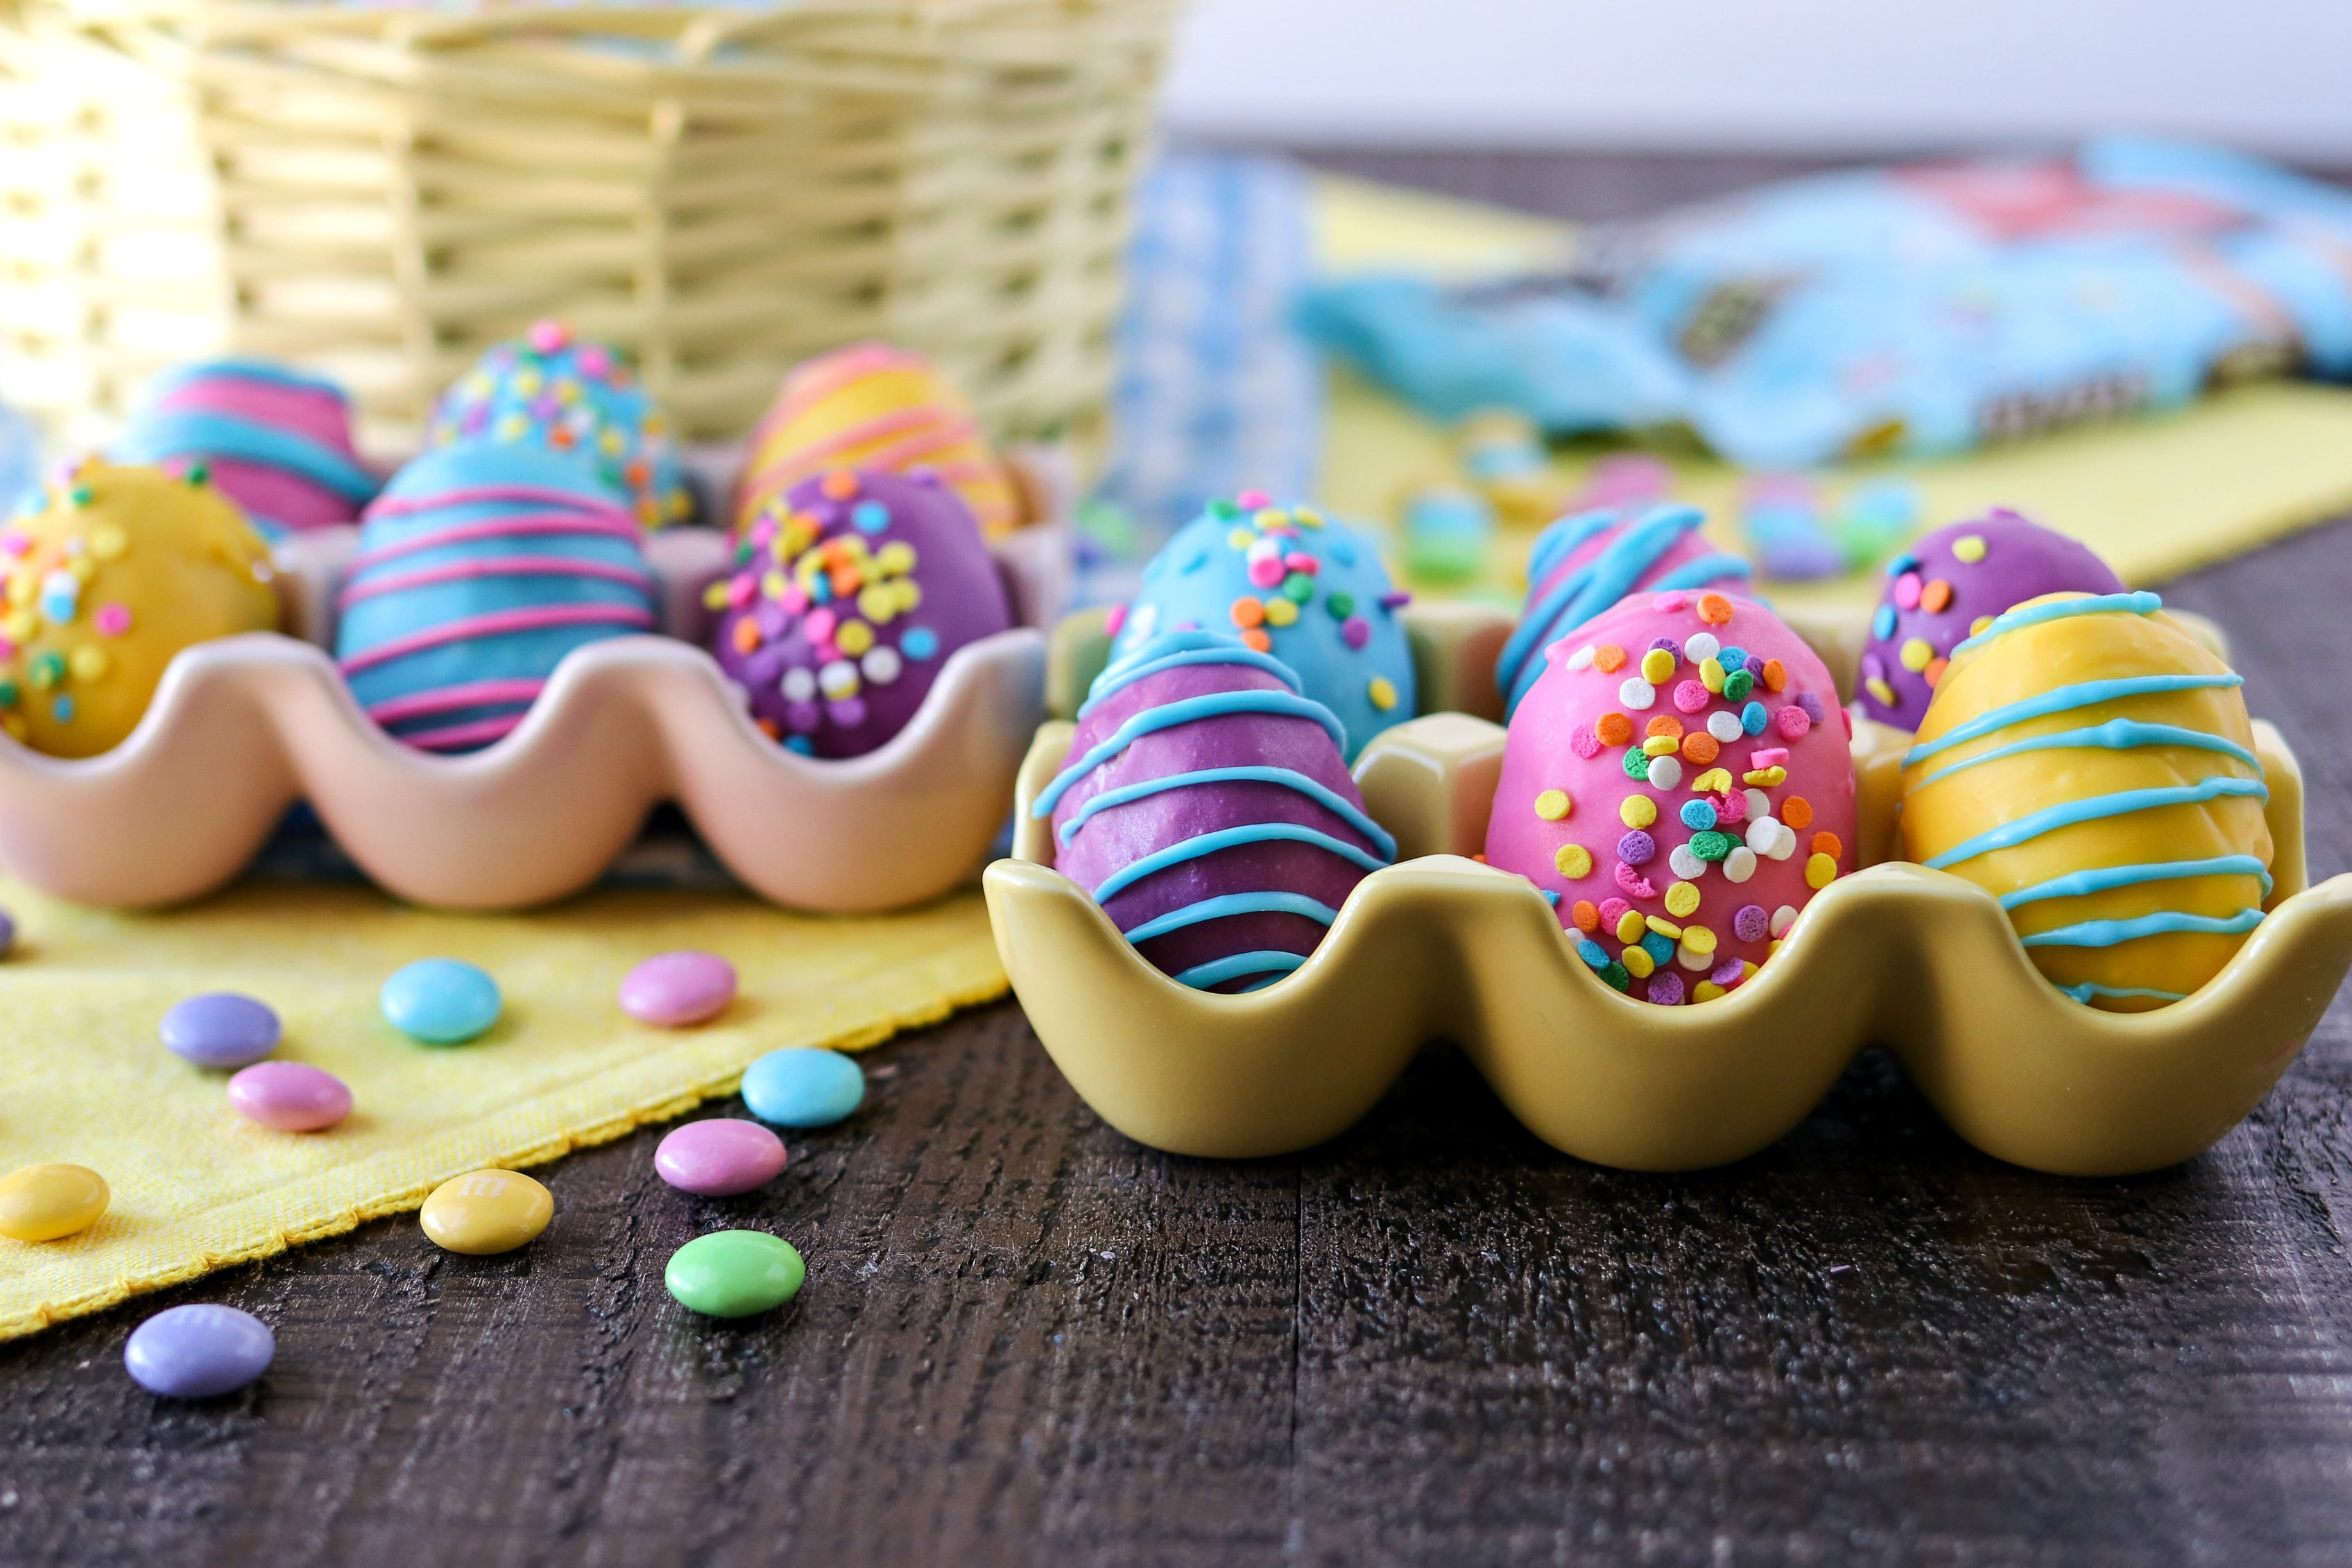 Cookie Dough Easter Eggs with M&M's® - Chewy edible chocolate chip cookie dough truffles with M&M'S® milk chocolate candies, rolled into egg shapes, and dipped into fun colored candy melts to make them look like Easter eggs. The perfect treats to make for Easter! #SweeterEaster